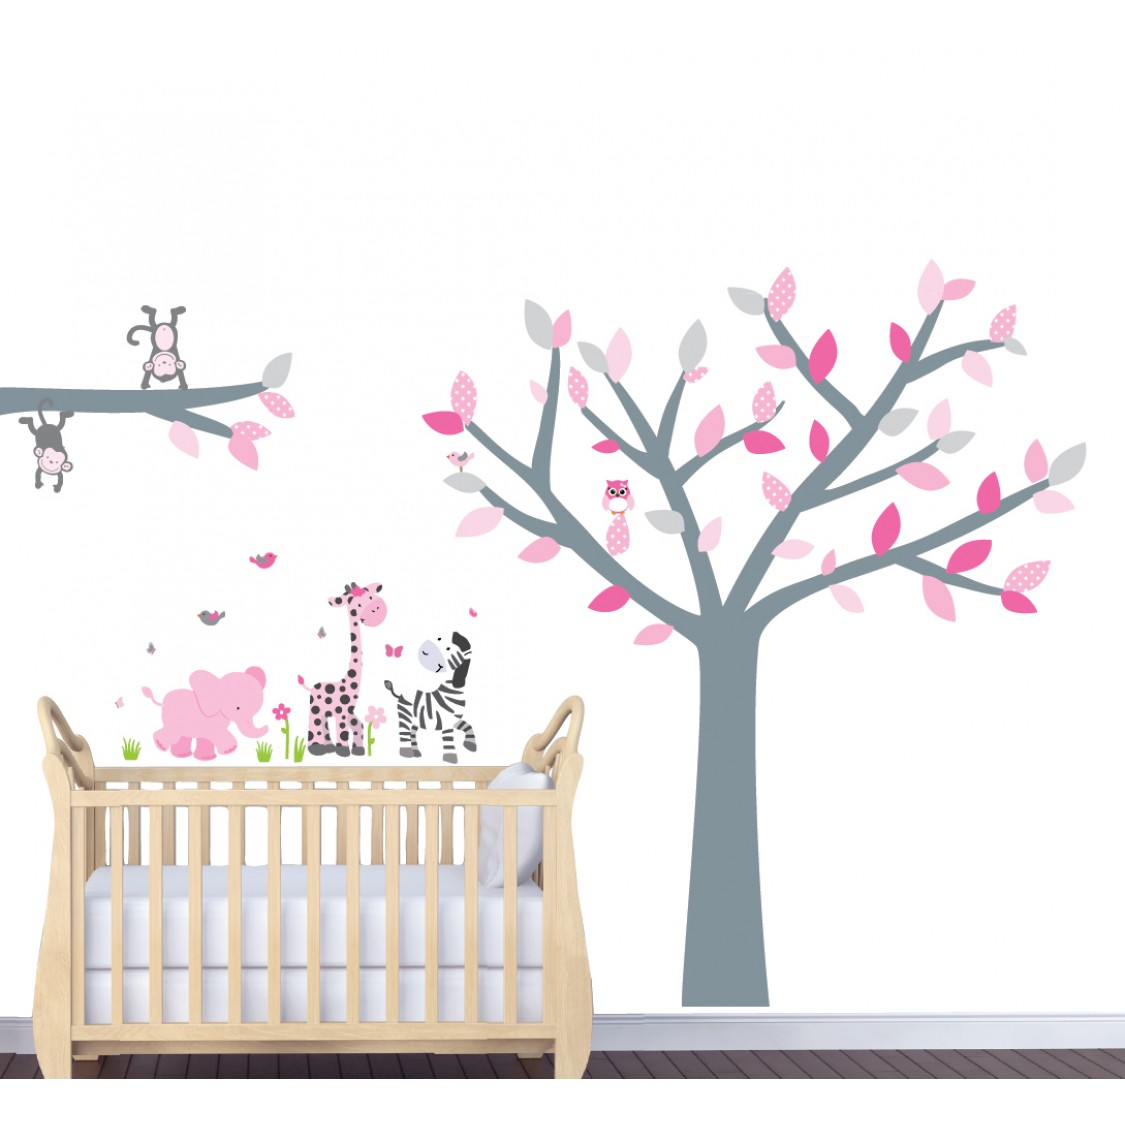 Pink Decals With Wall Decal Tree Nursery For Girls Bedrooms  sc 1 st  Nursery Decals and More & Pink and Grey Jungle Wall Stickers For Nursery With Tree Wall Art ...